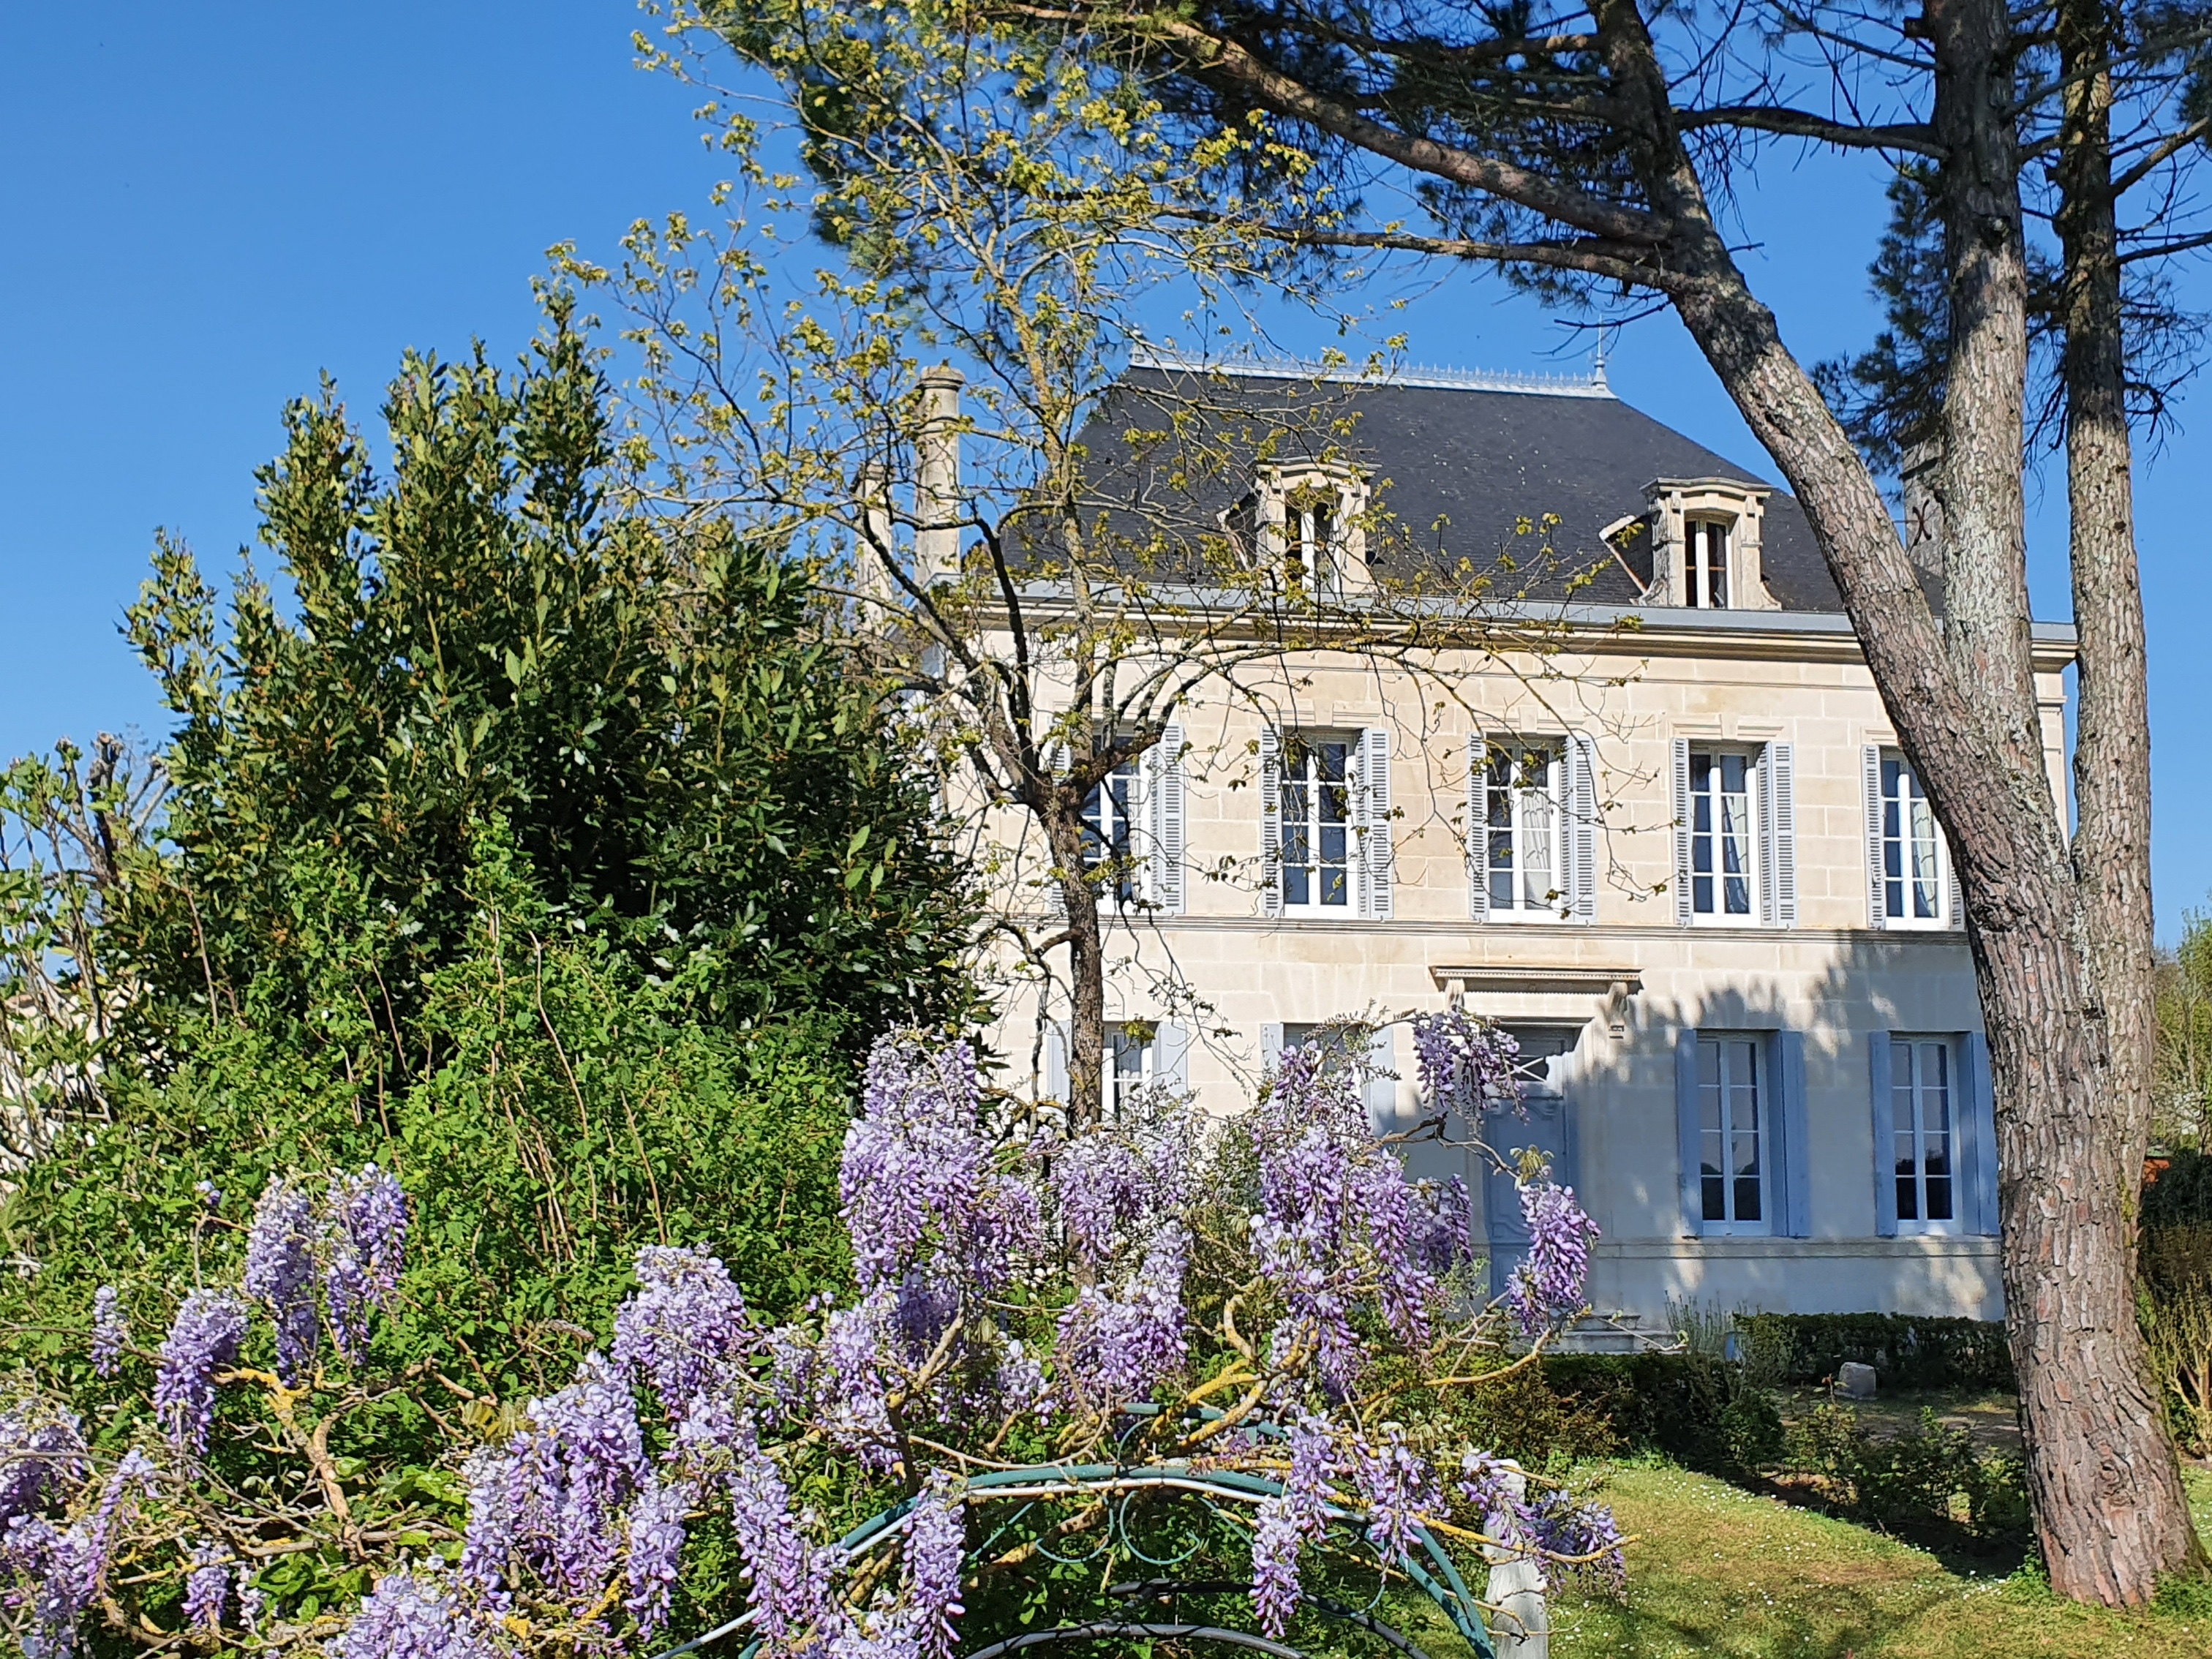 front of the Manor with wisteria